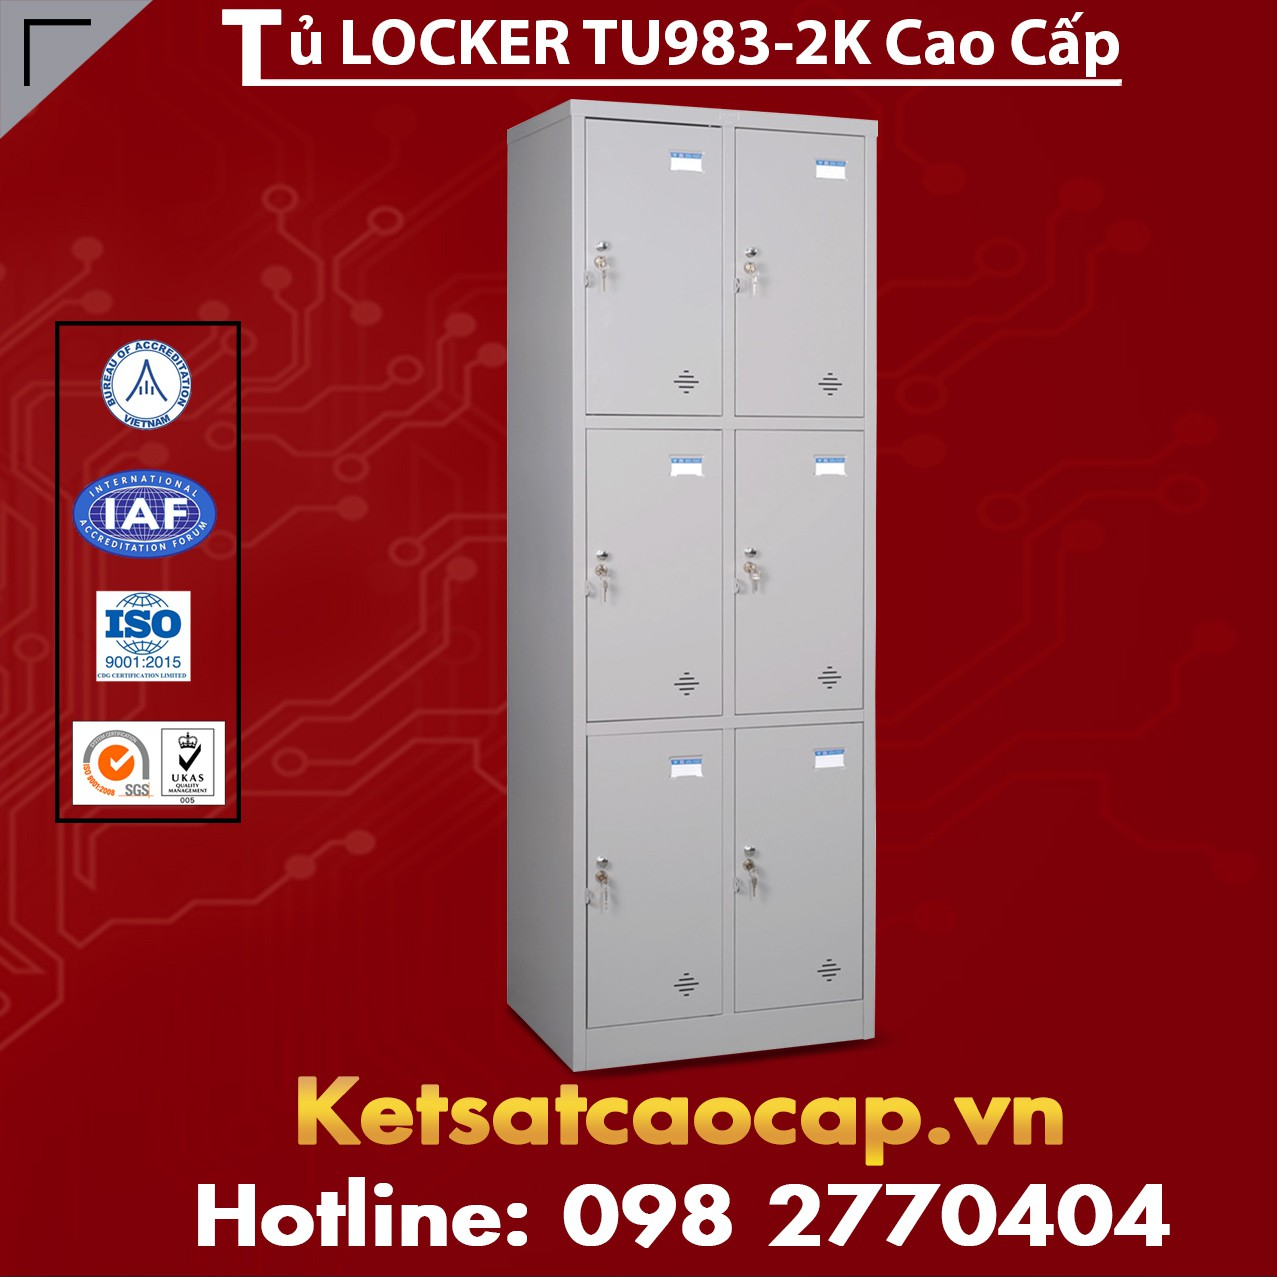 Tủ Locker TU983-2K